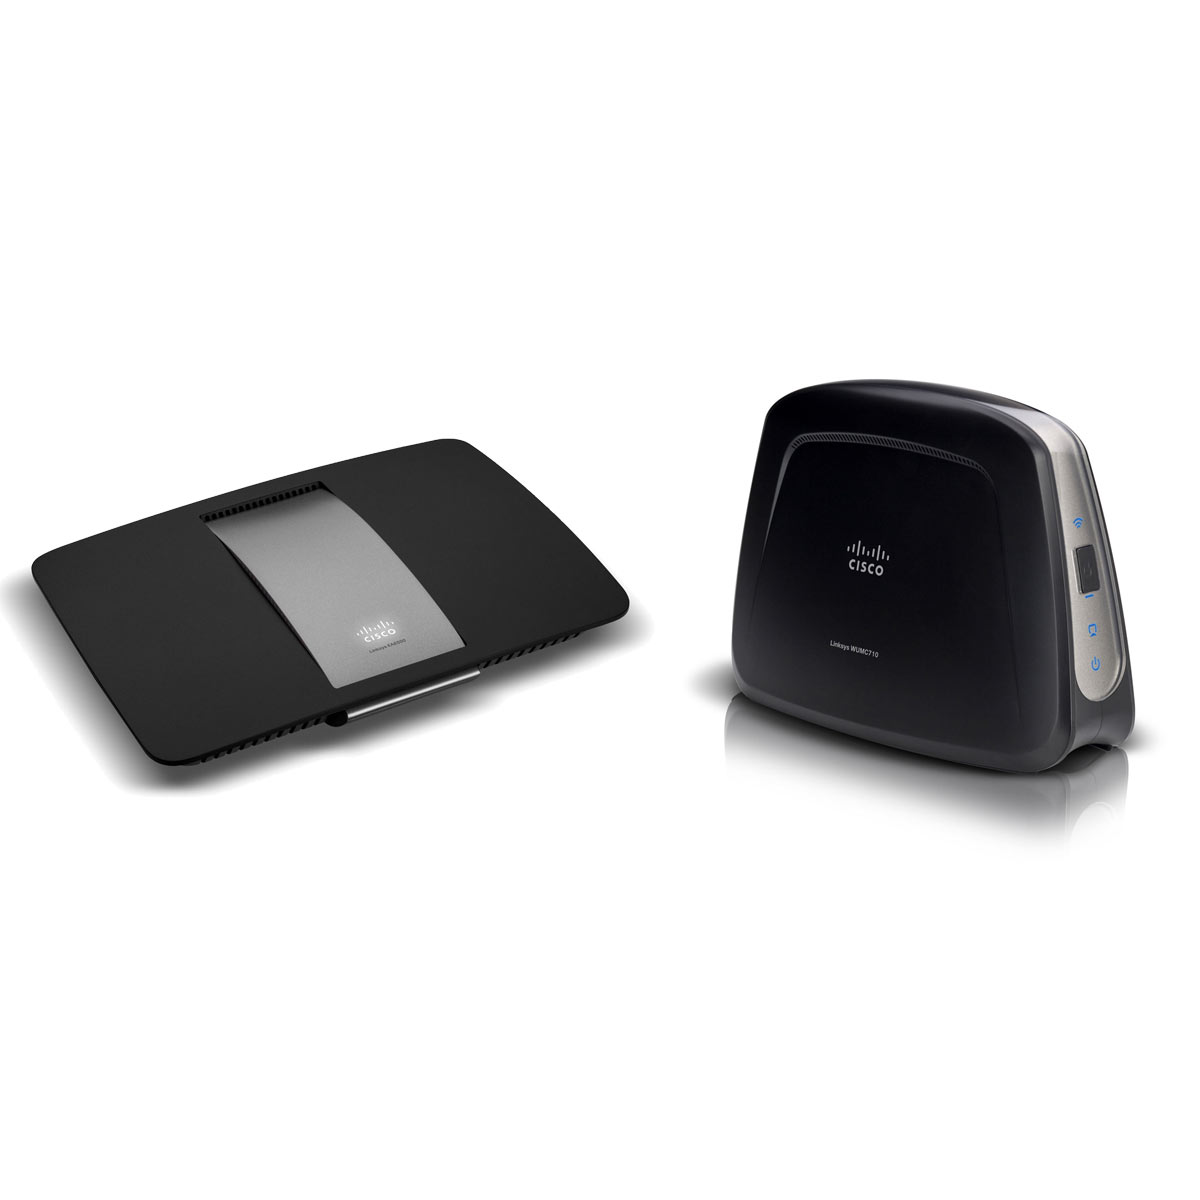 linksys ea6500 linksys wumc710 modem routeur linksys sur. Black Bedroom Furniture Sets. Home Design Ideas